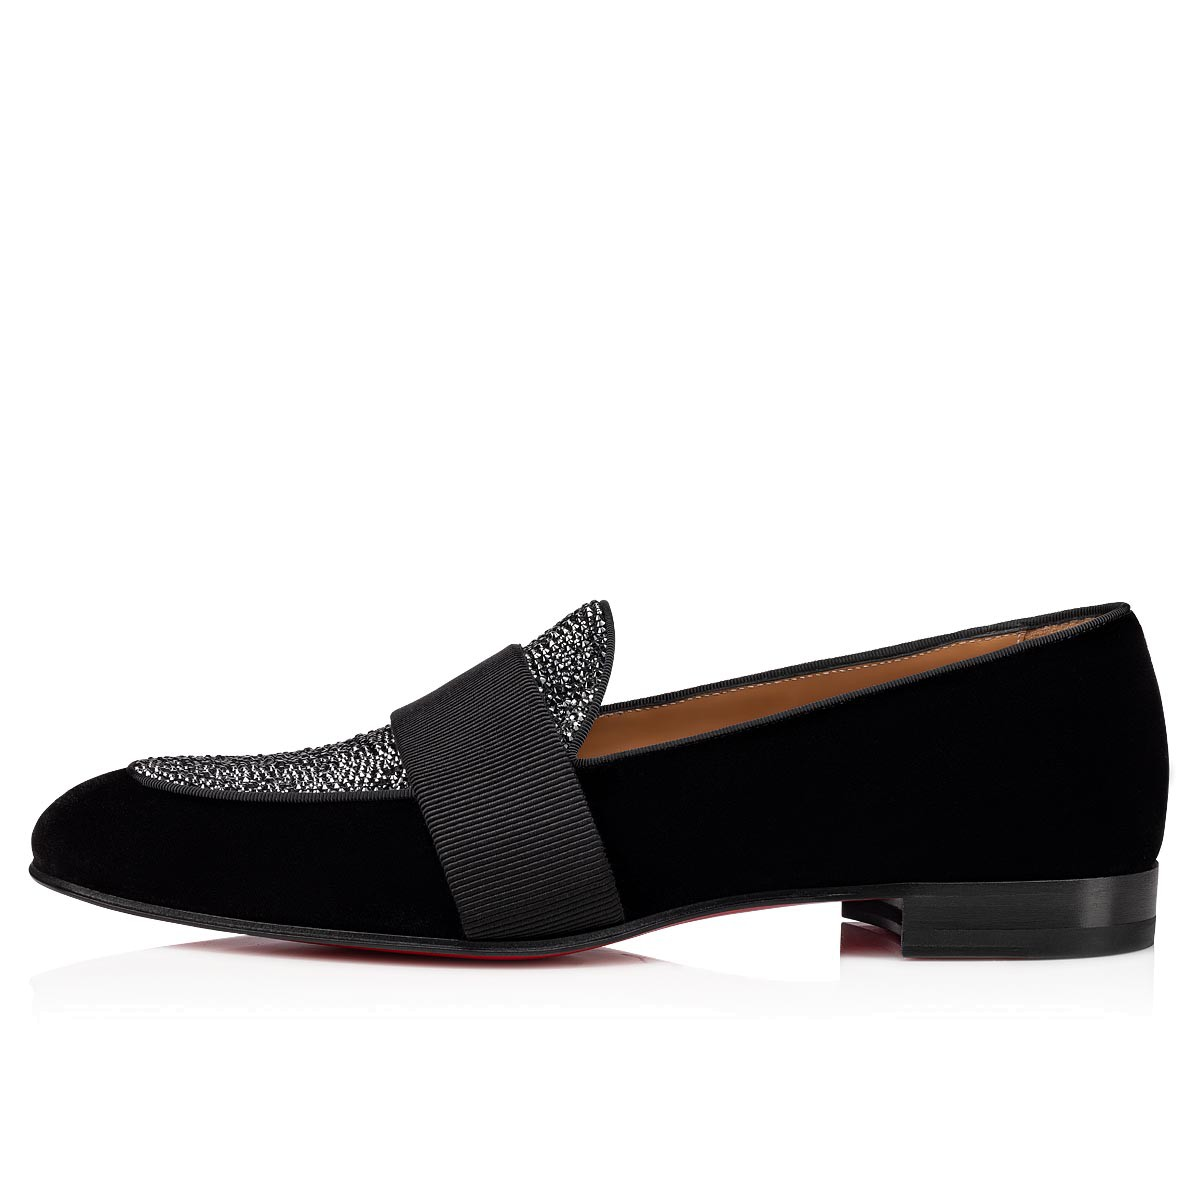 メンズシューズ - Night On The Nile - Christian Louboutin